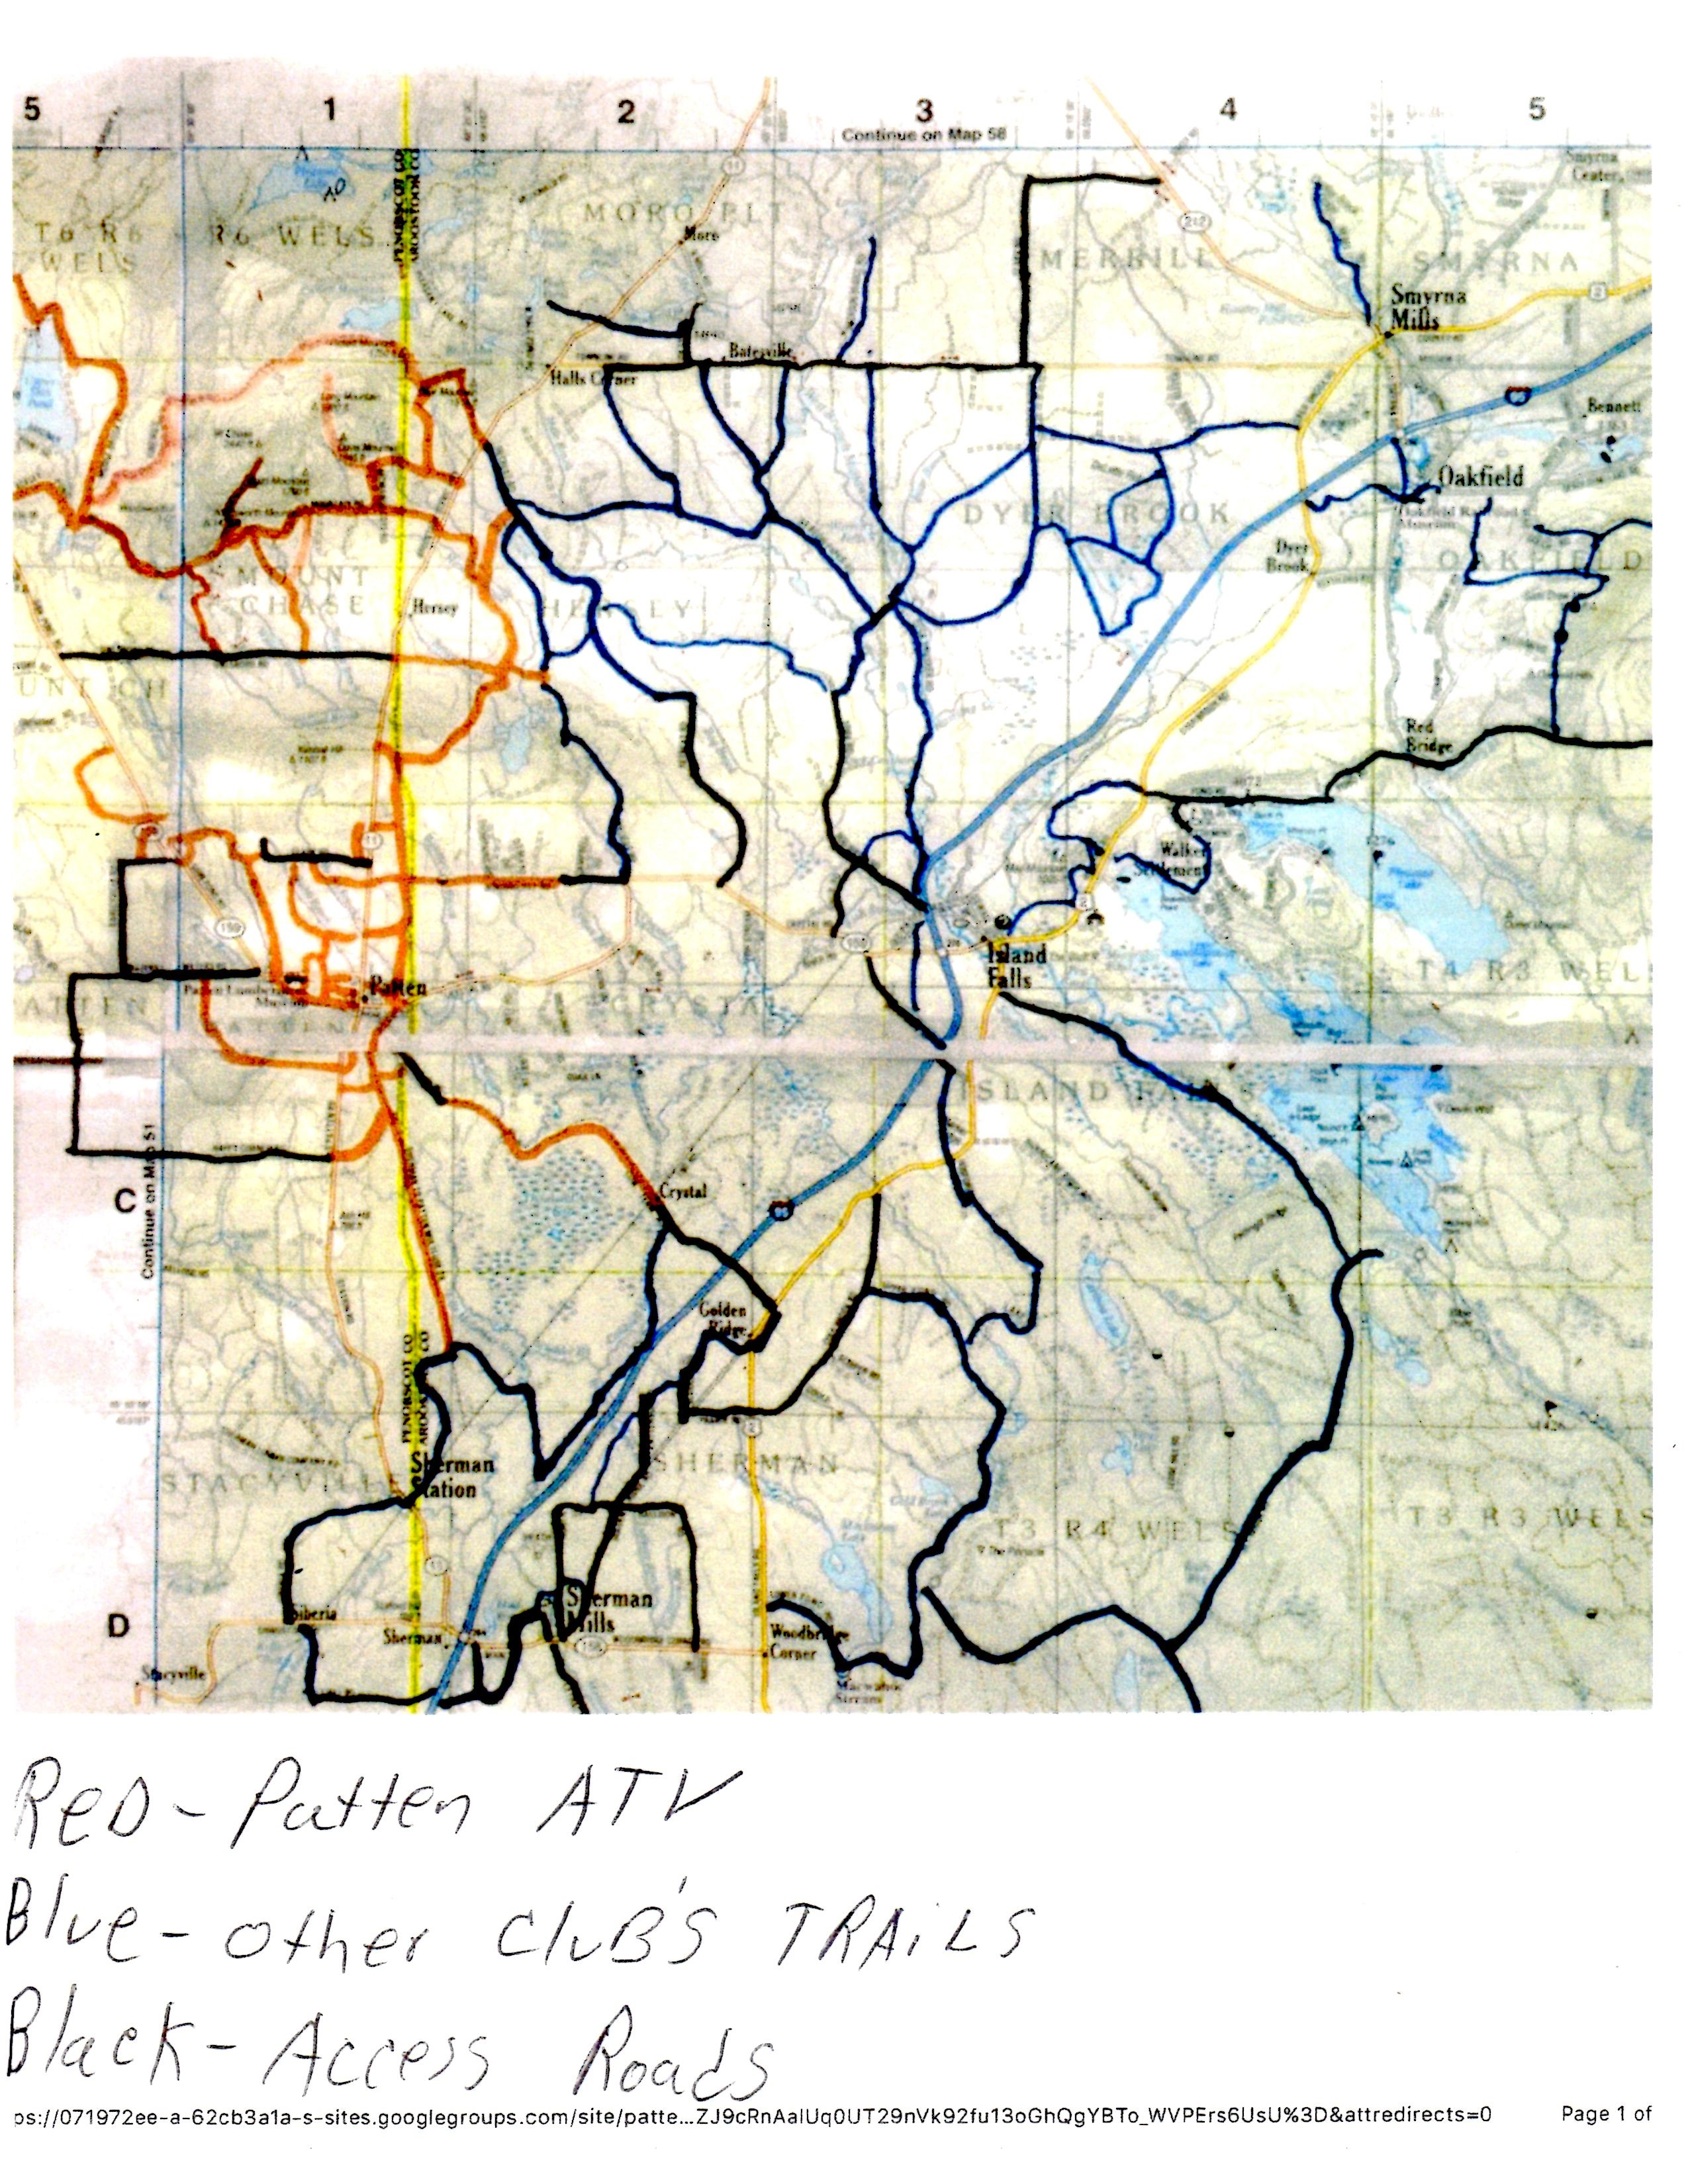 Patten ATV Trail Maps Now Available - Town of Patten